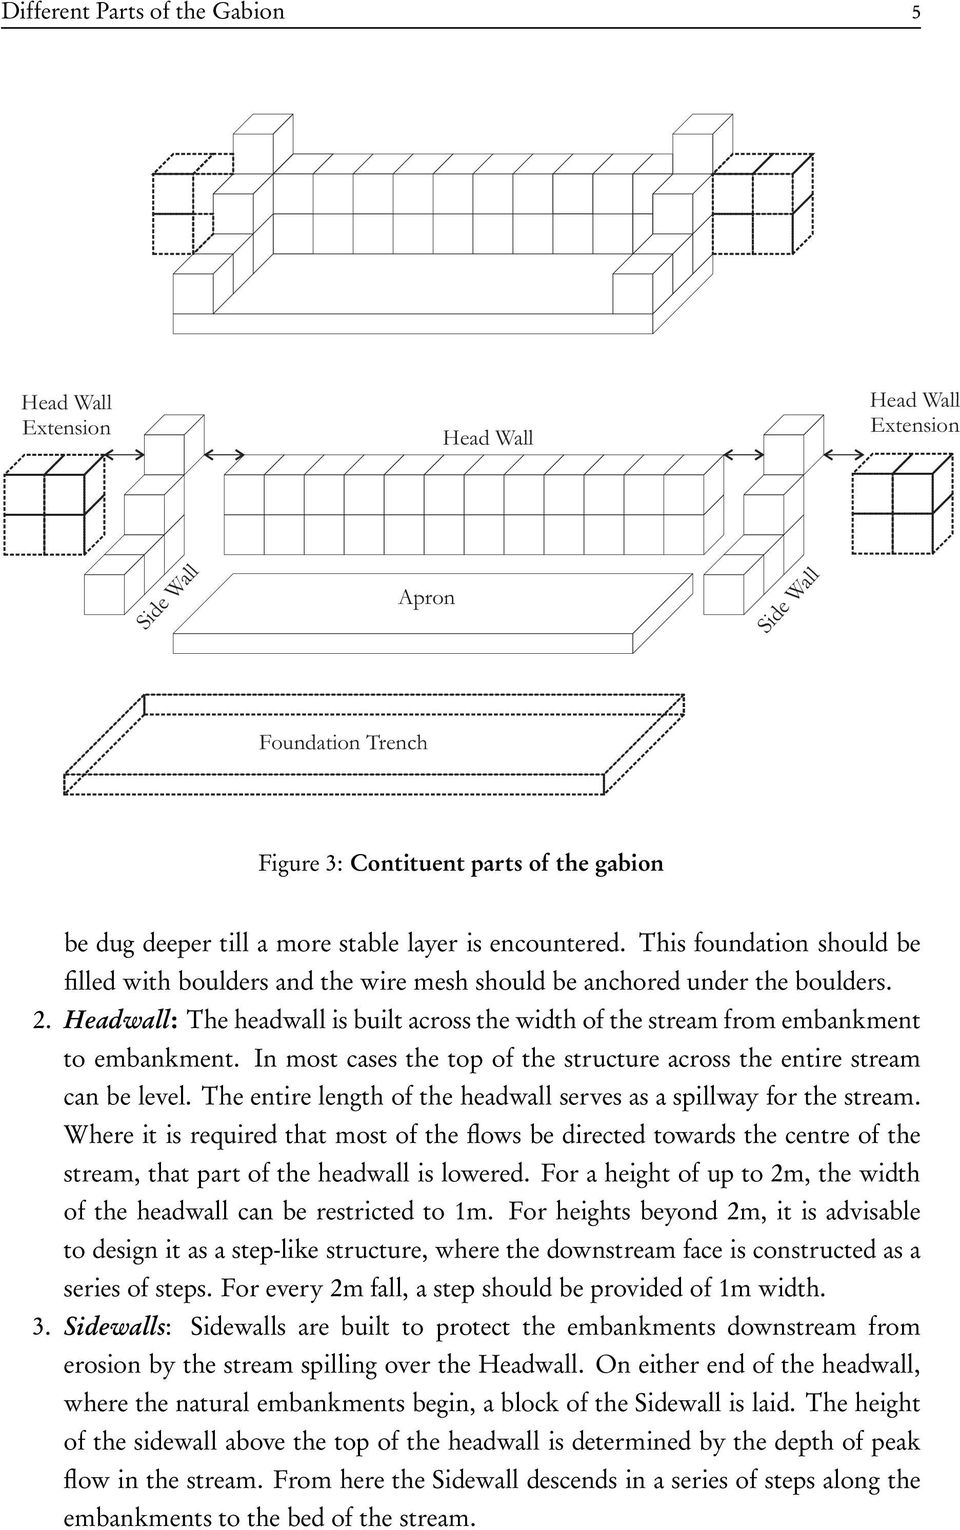 Headwall: The headwall is built across the width of the stream from embankment to embankment. In most cases the top of the structure across the entire stream can be level.